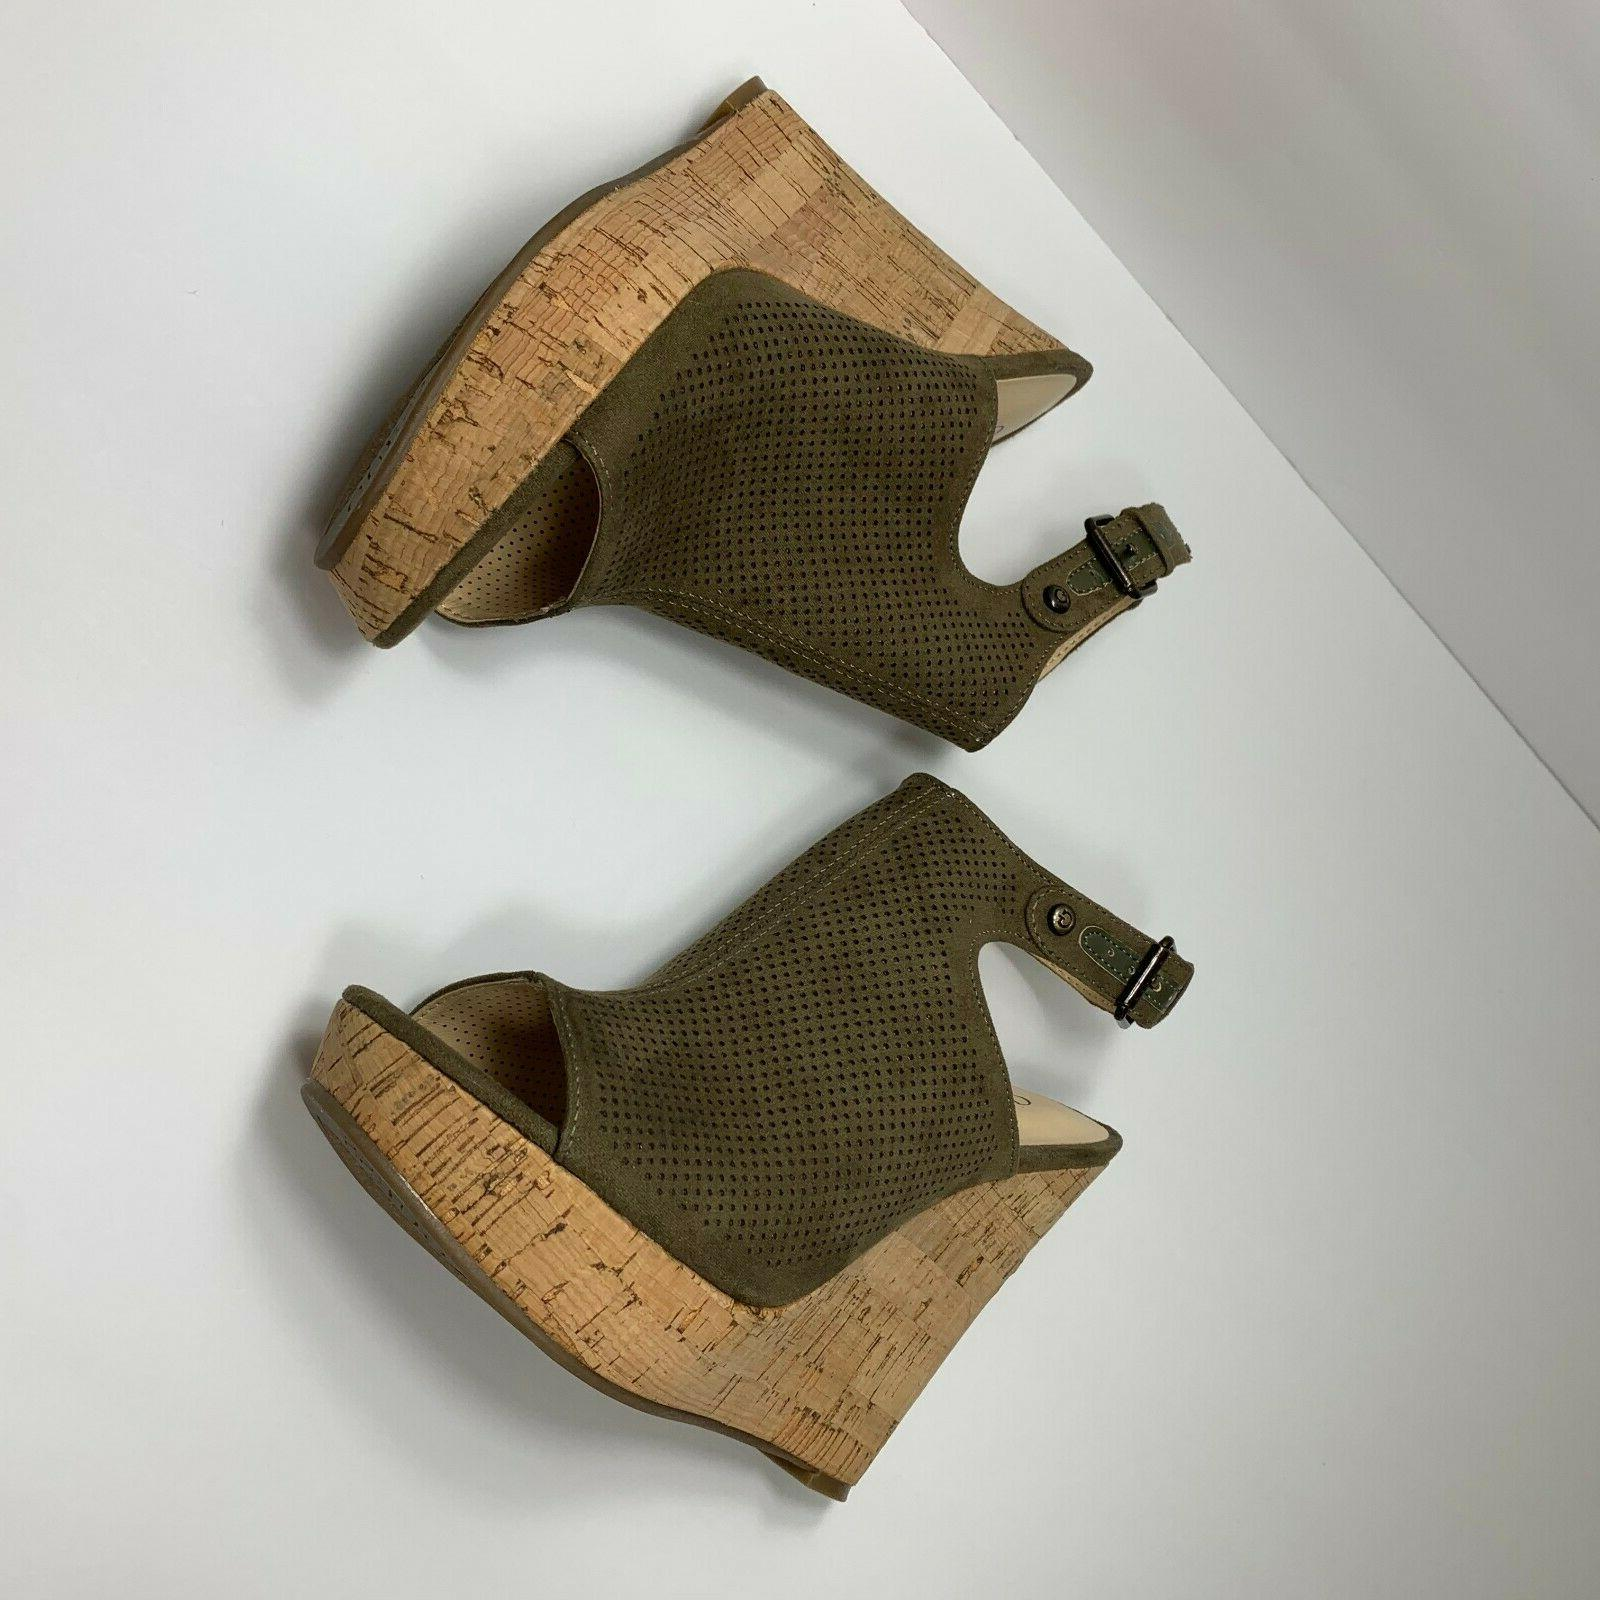 Guess Shoes Wedge Sandals Size 5.5 M Olive Green New